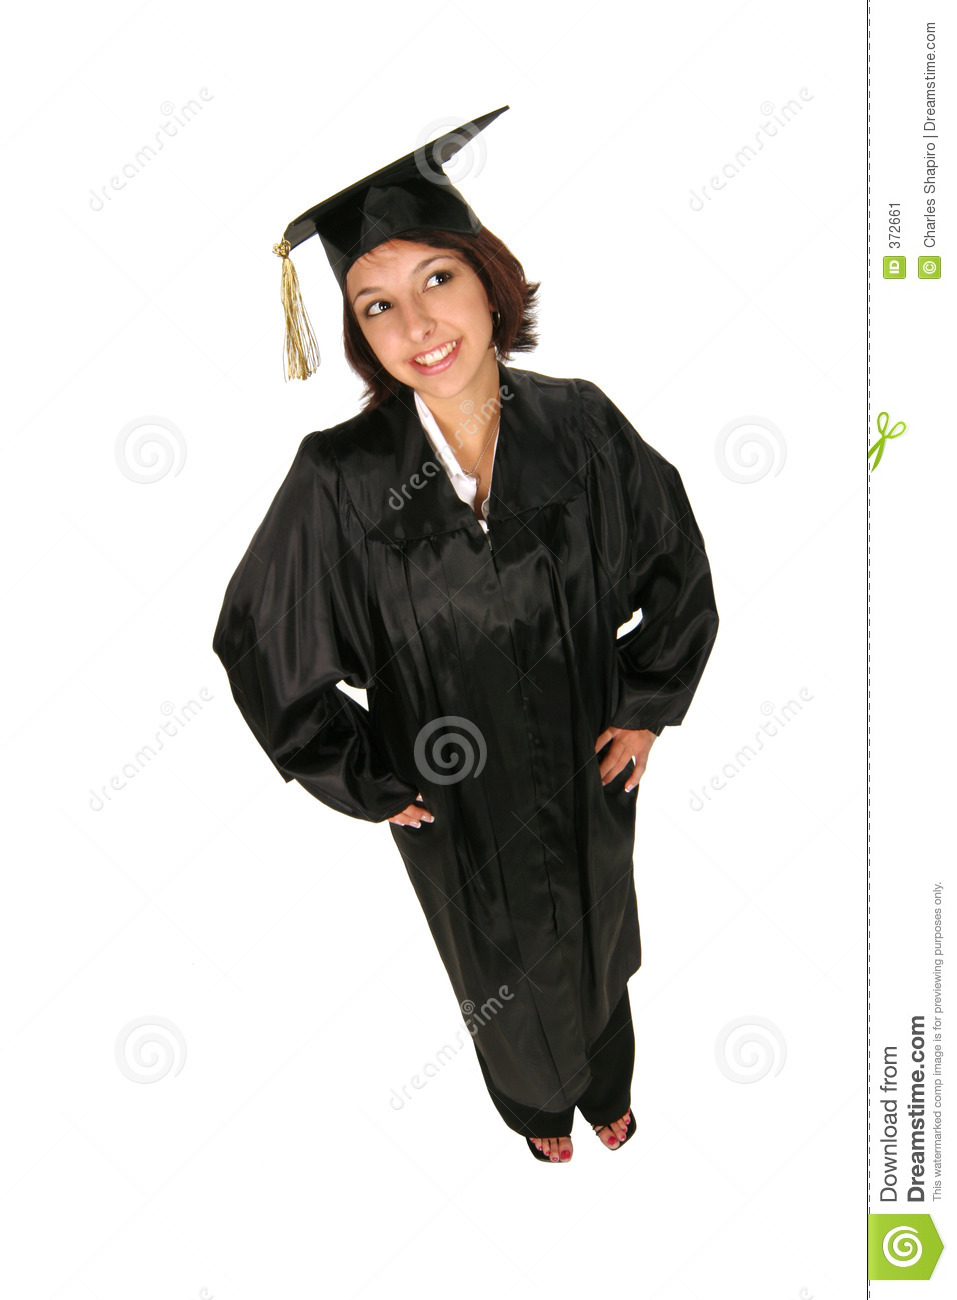 Girl in cap and gown stock image. Image of background, attire - 372661